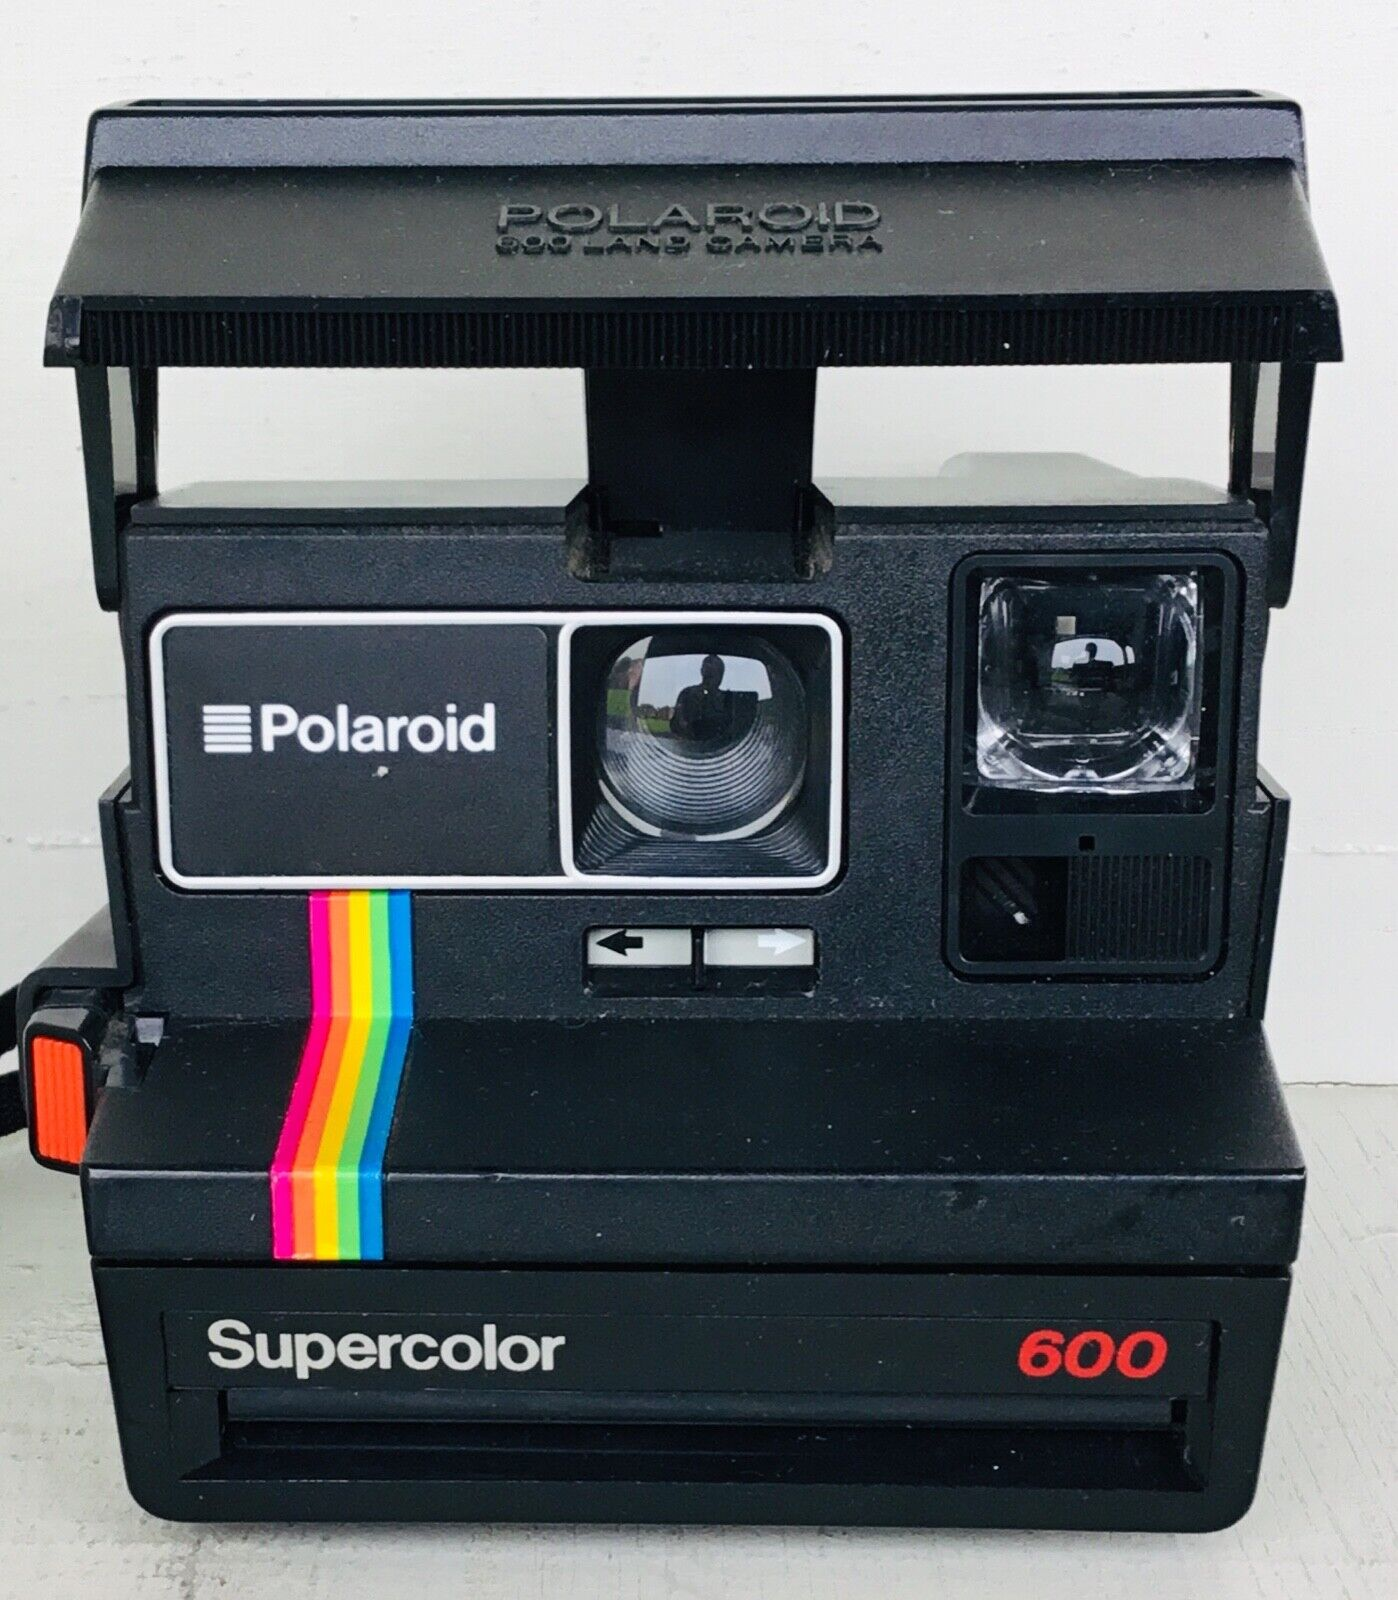 POLAROID Land camera Supercolor 600 TESTED & GOOD WORKING